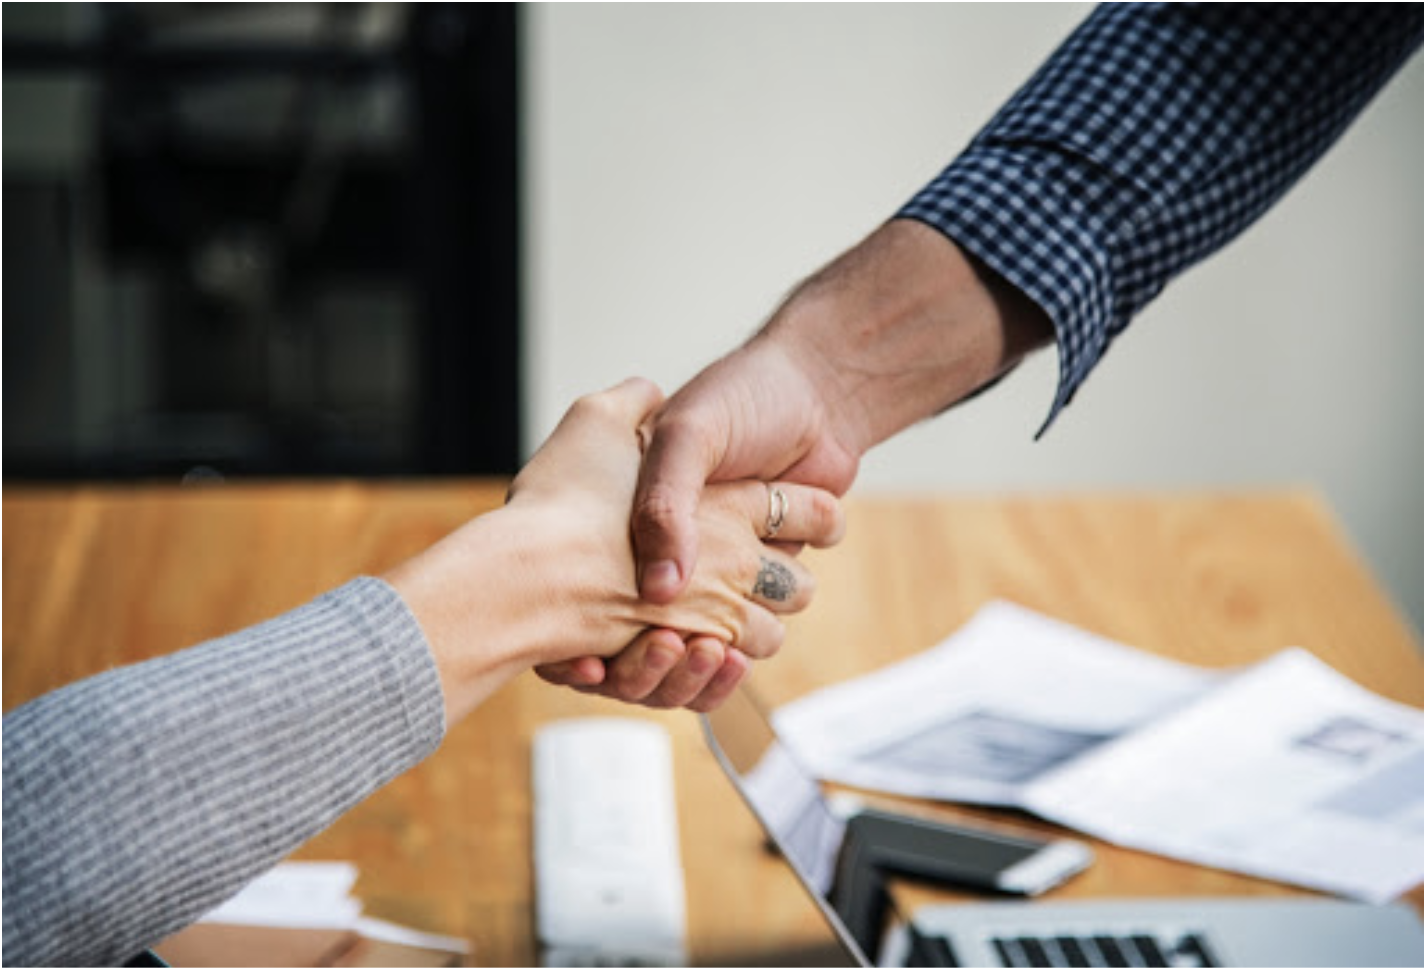 Two people shaking hands in office environment